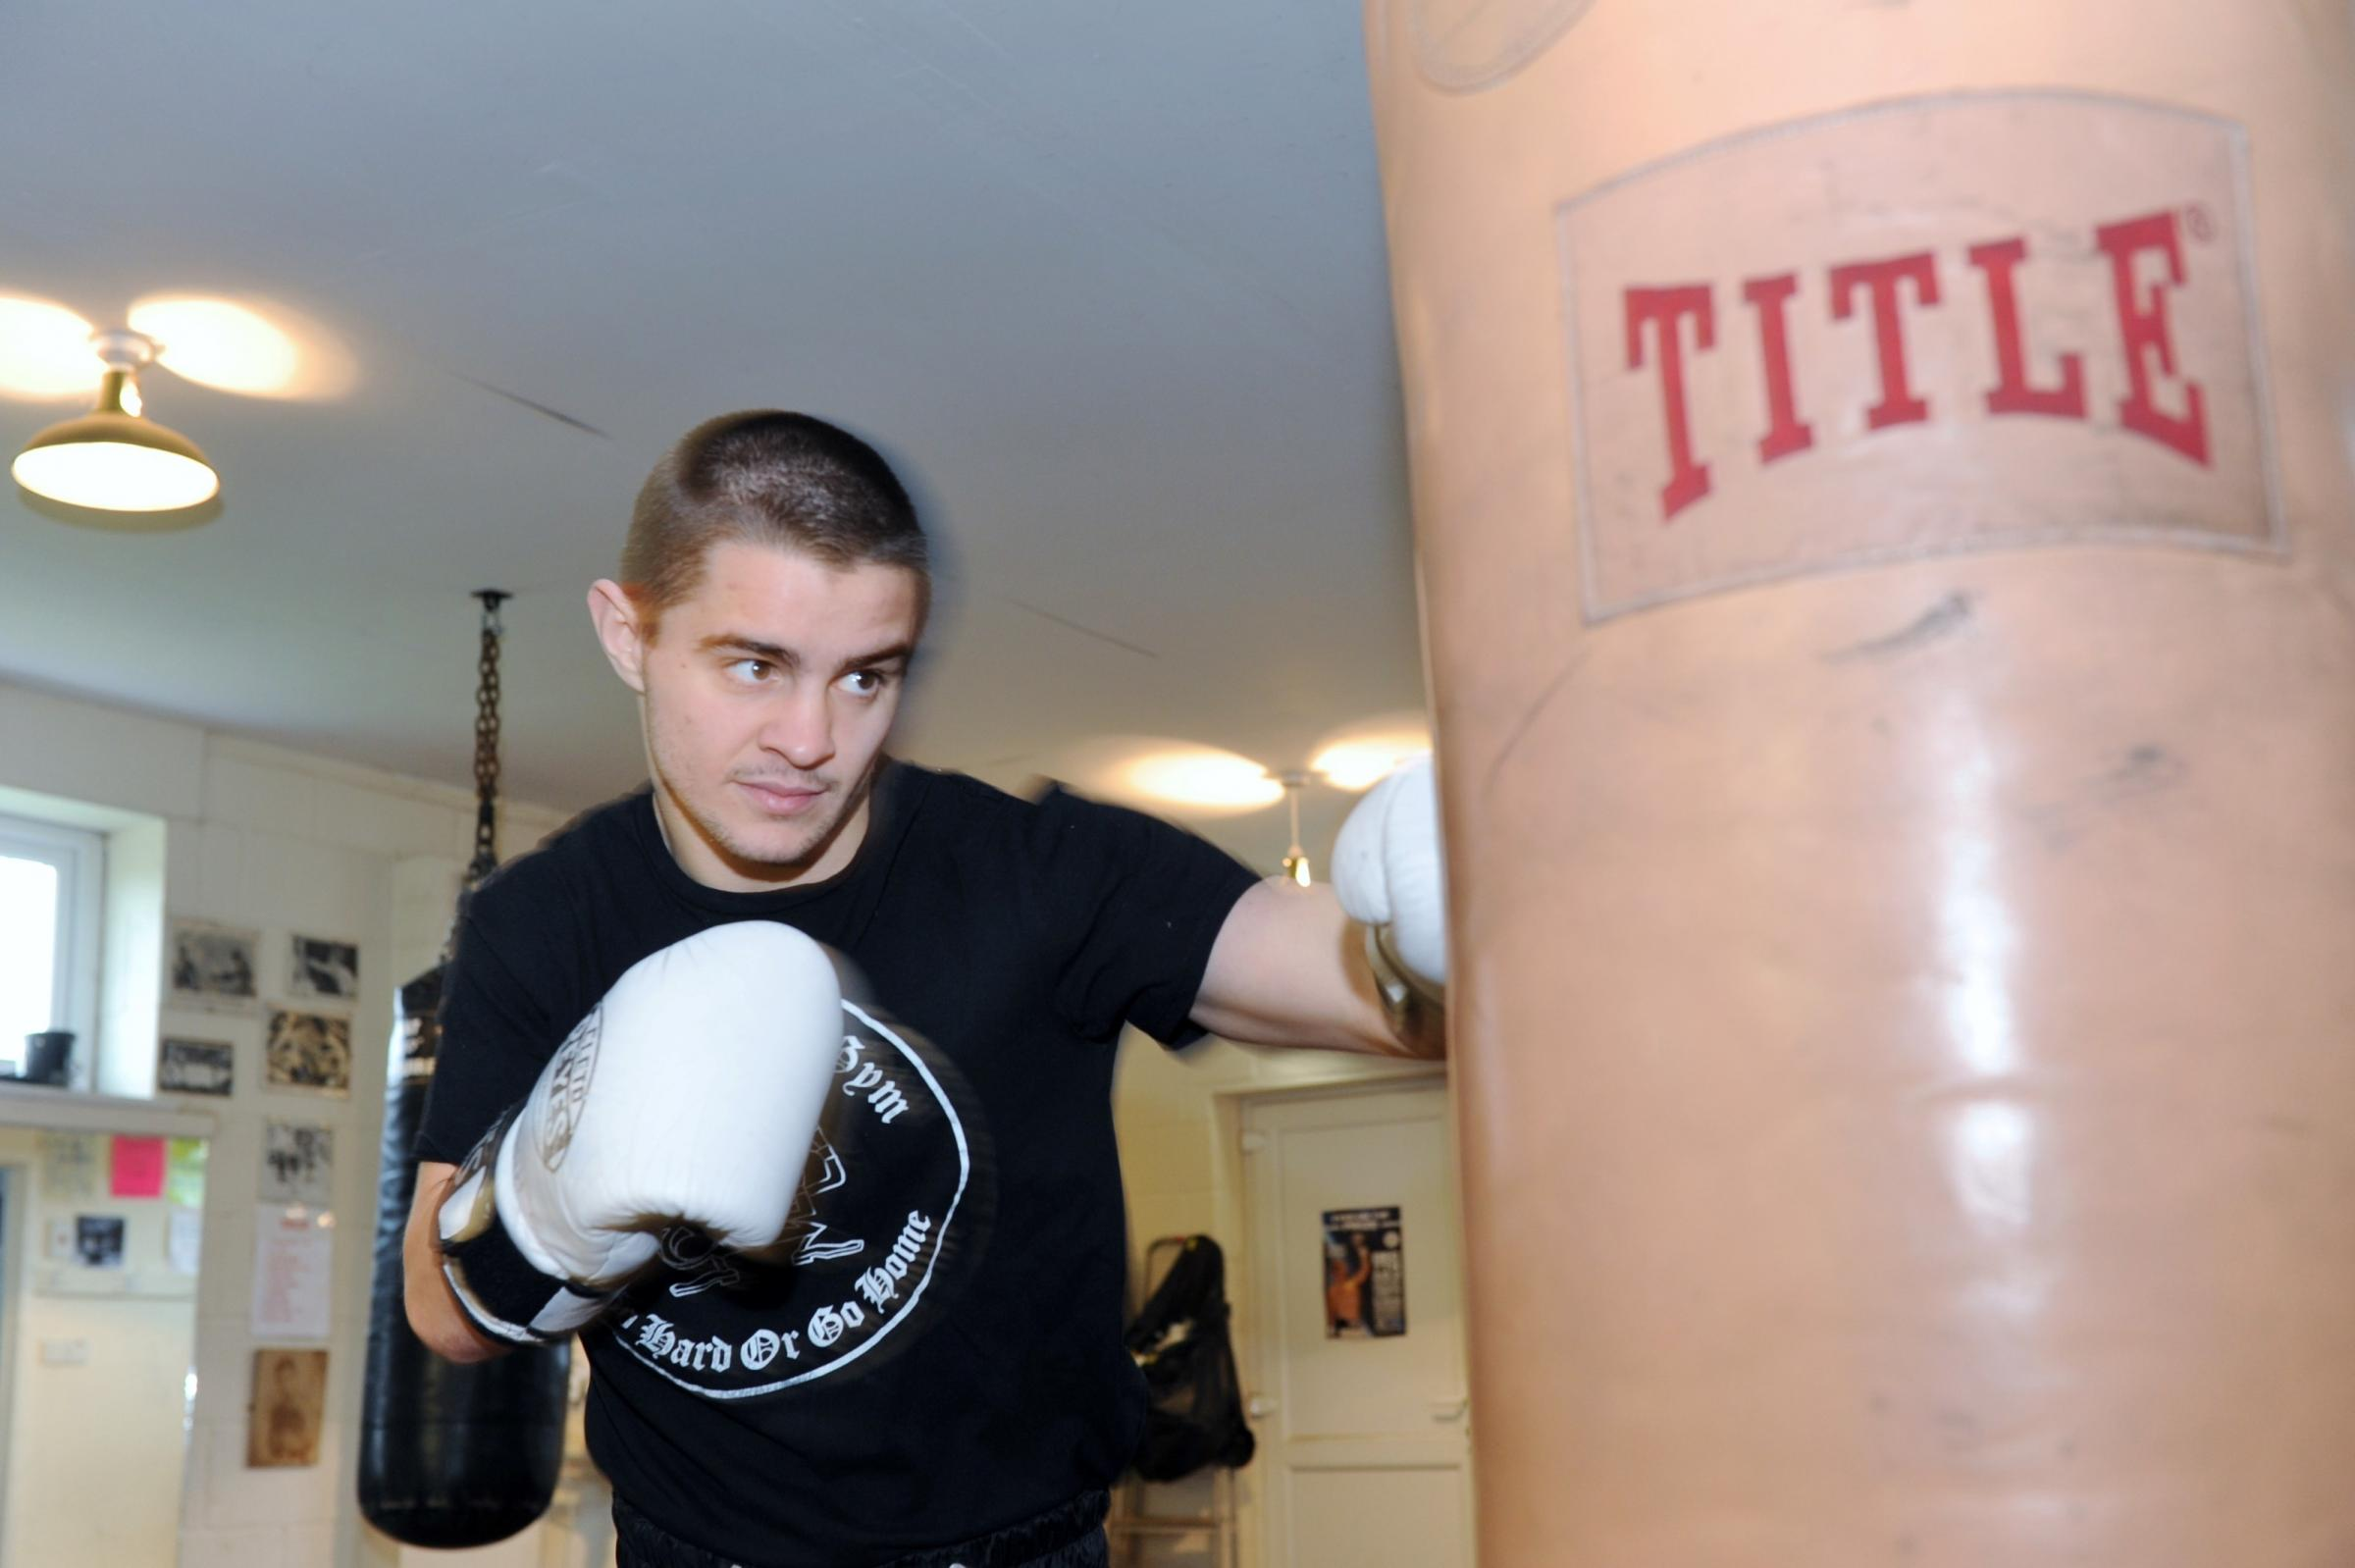 BOXING: The only way is Essex – as Joe Hughes eyes his next title